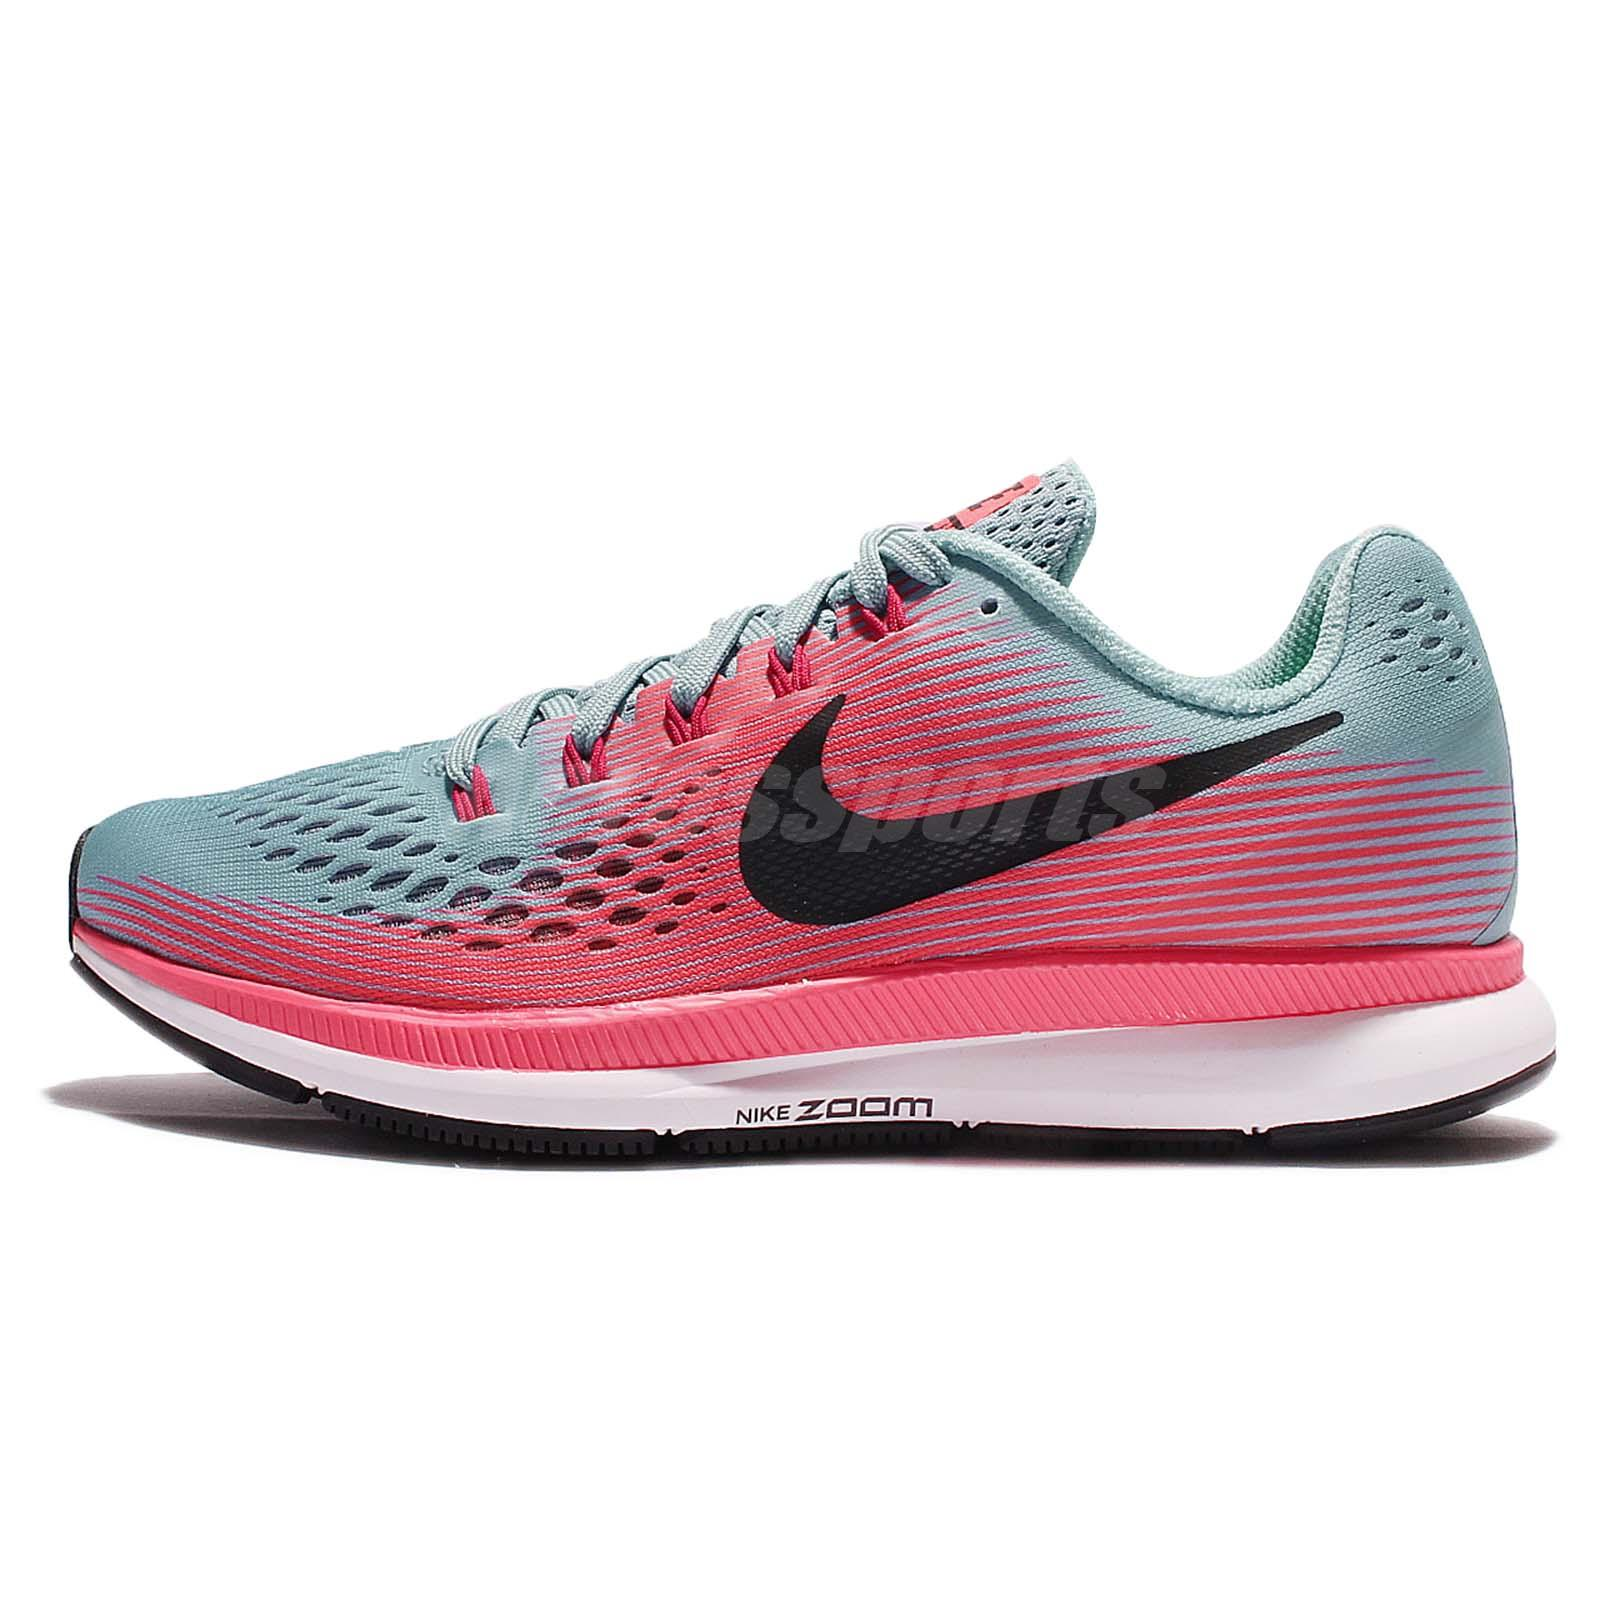 c53bcb54a97cf Wmns Nike Air Zoom Pegasus 34 Blue Pink Women Running Shoes Sneakers 880560- 406